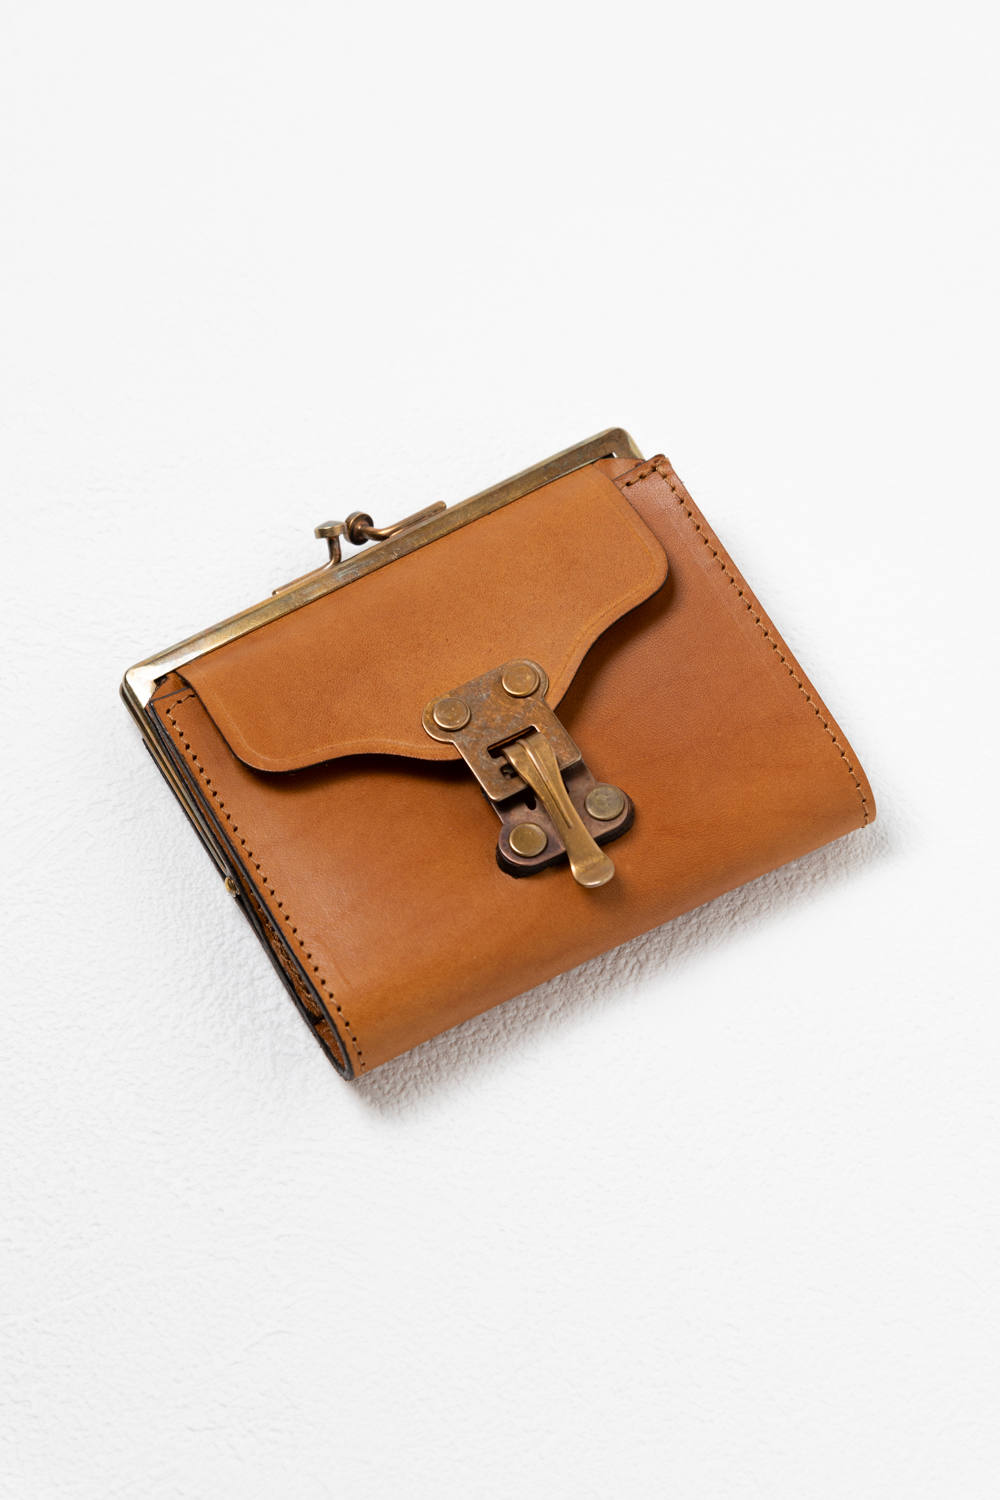 【20SS】レザーボヤージュパースウォレット [キャメル] / LEATHER VOYAGE PURSE WALLET [MEAL]